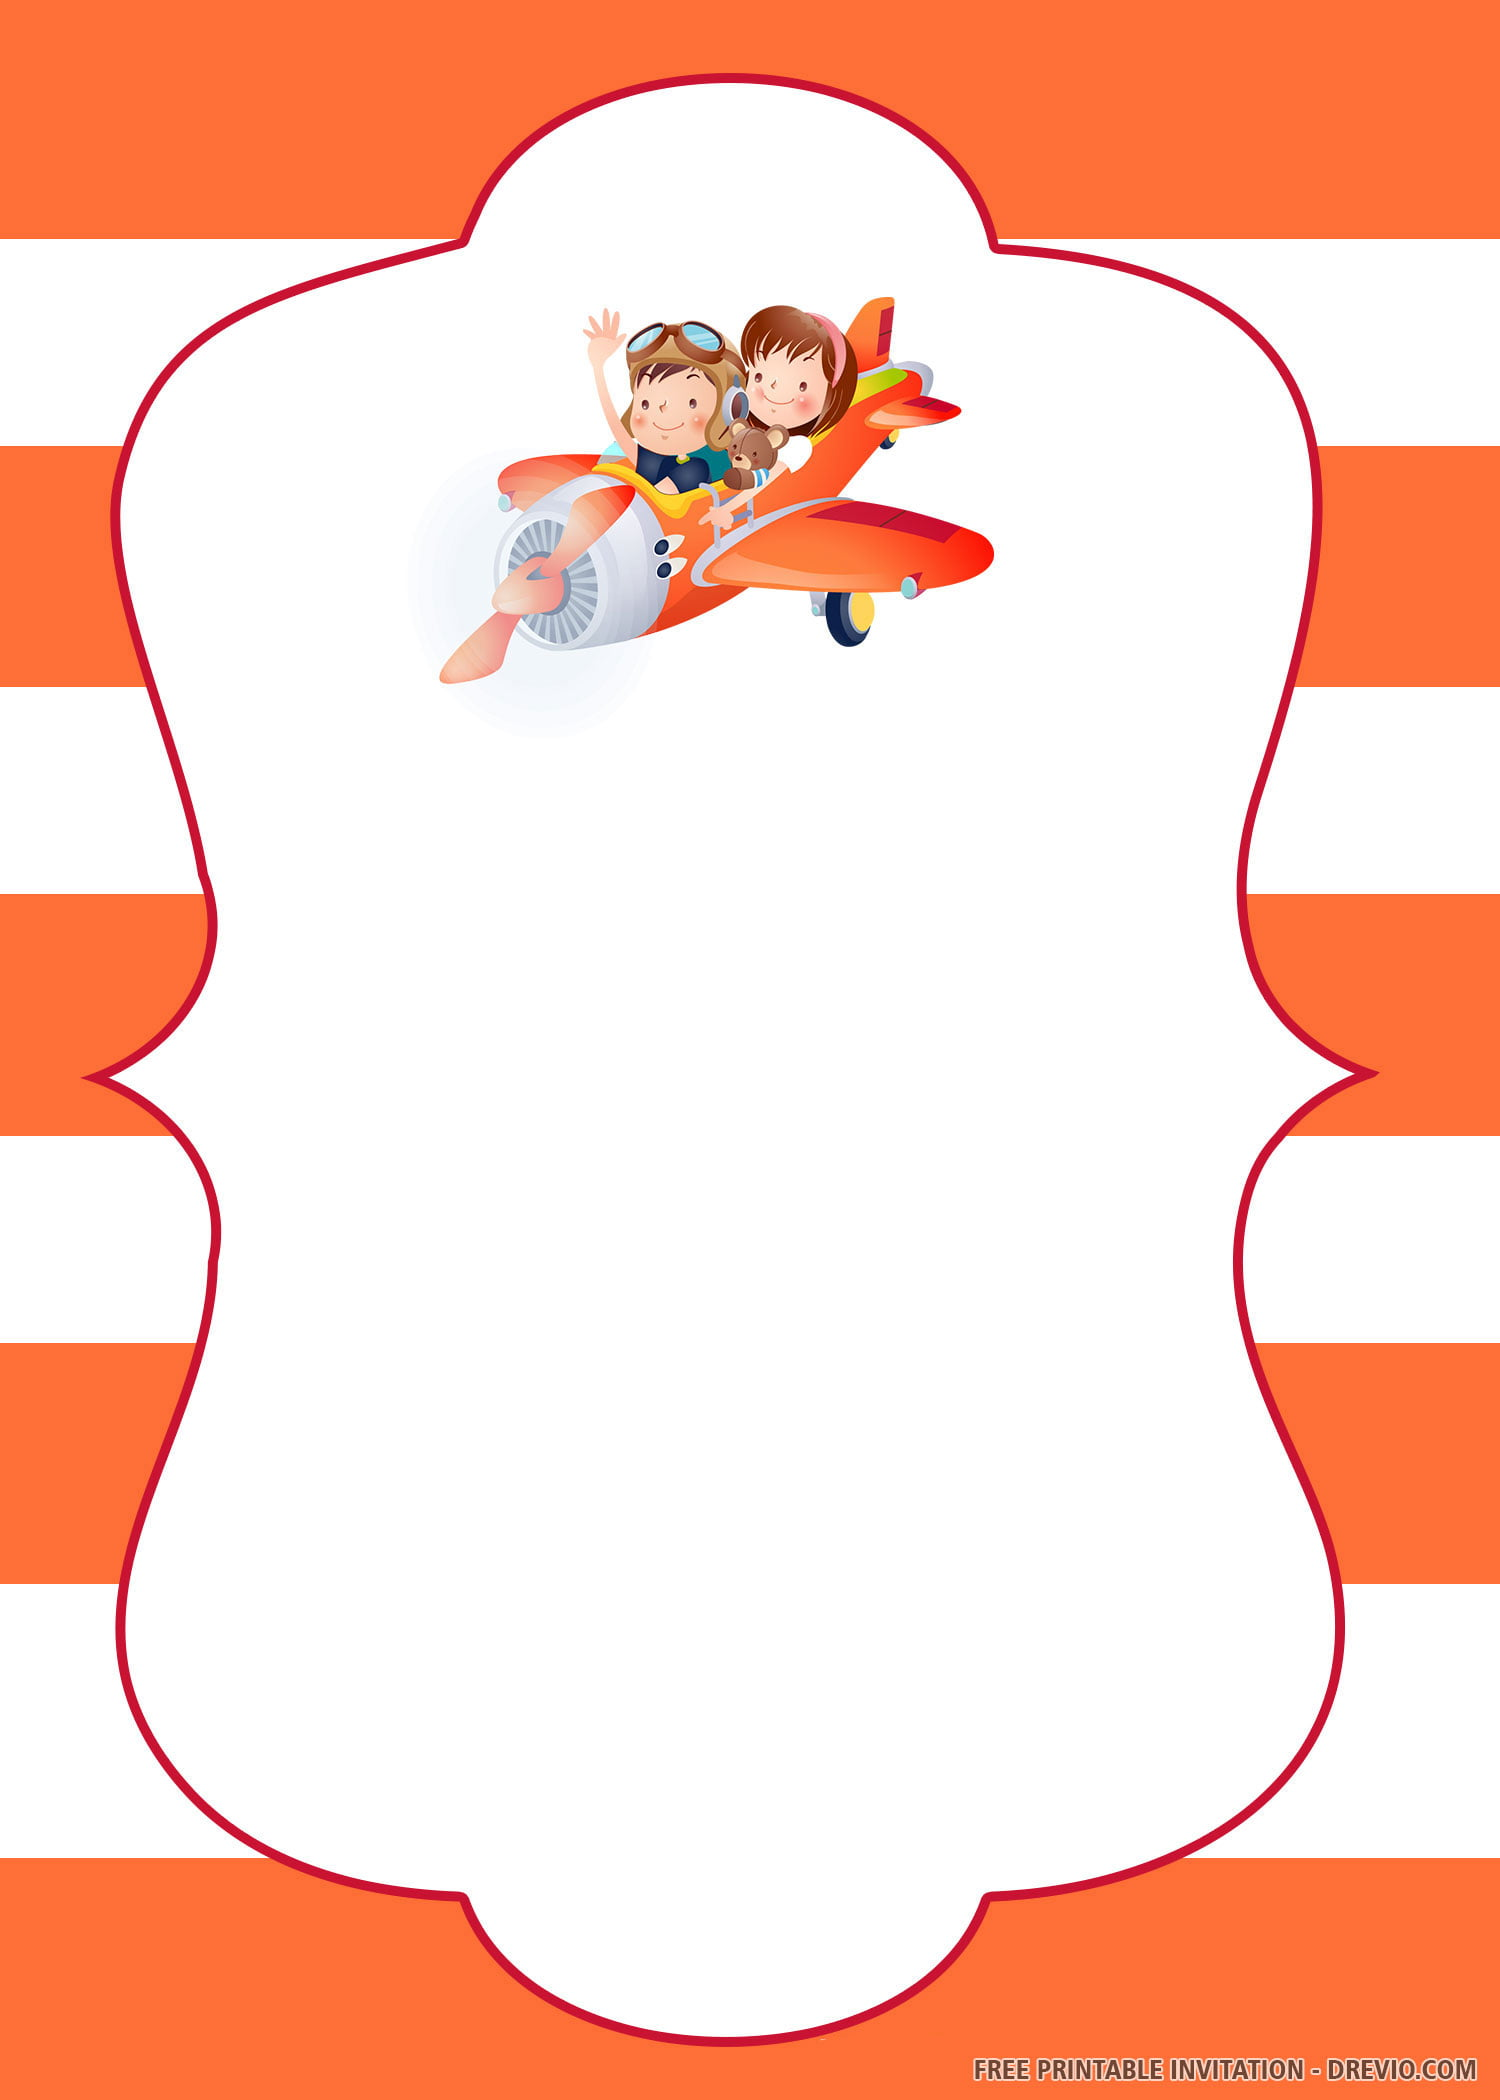 Free Printable Up Up And Away Airplane Birthday